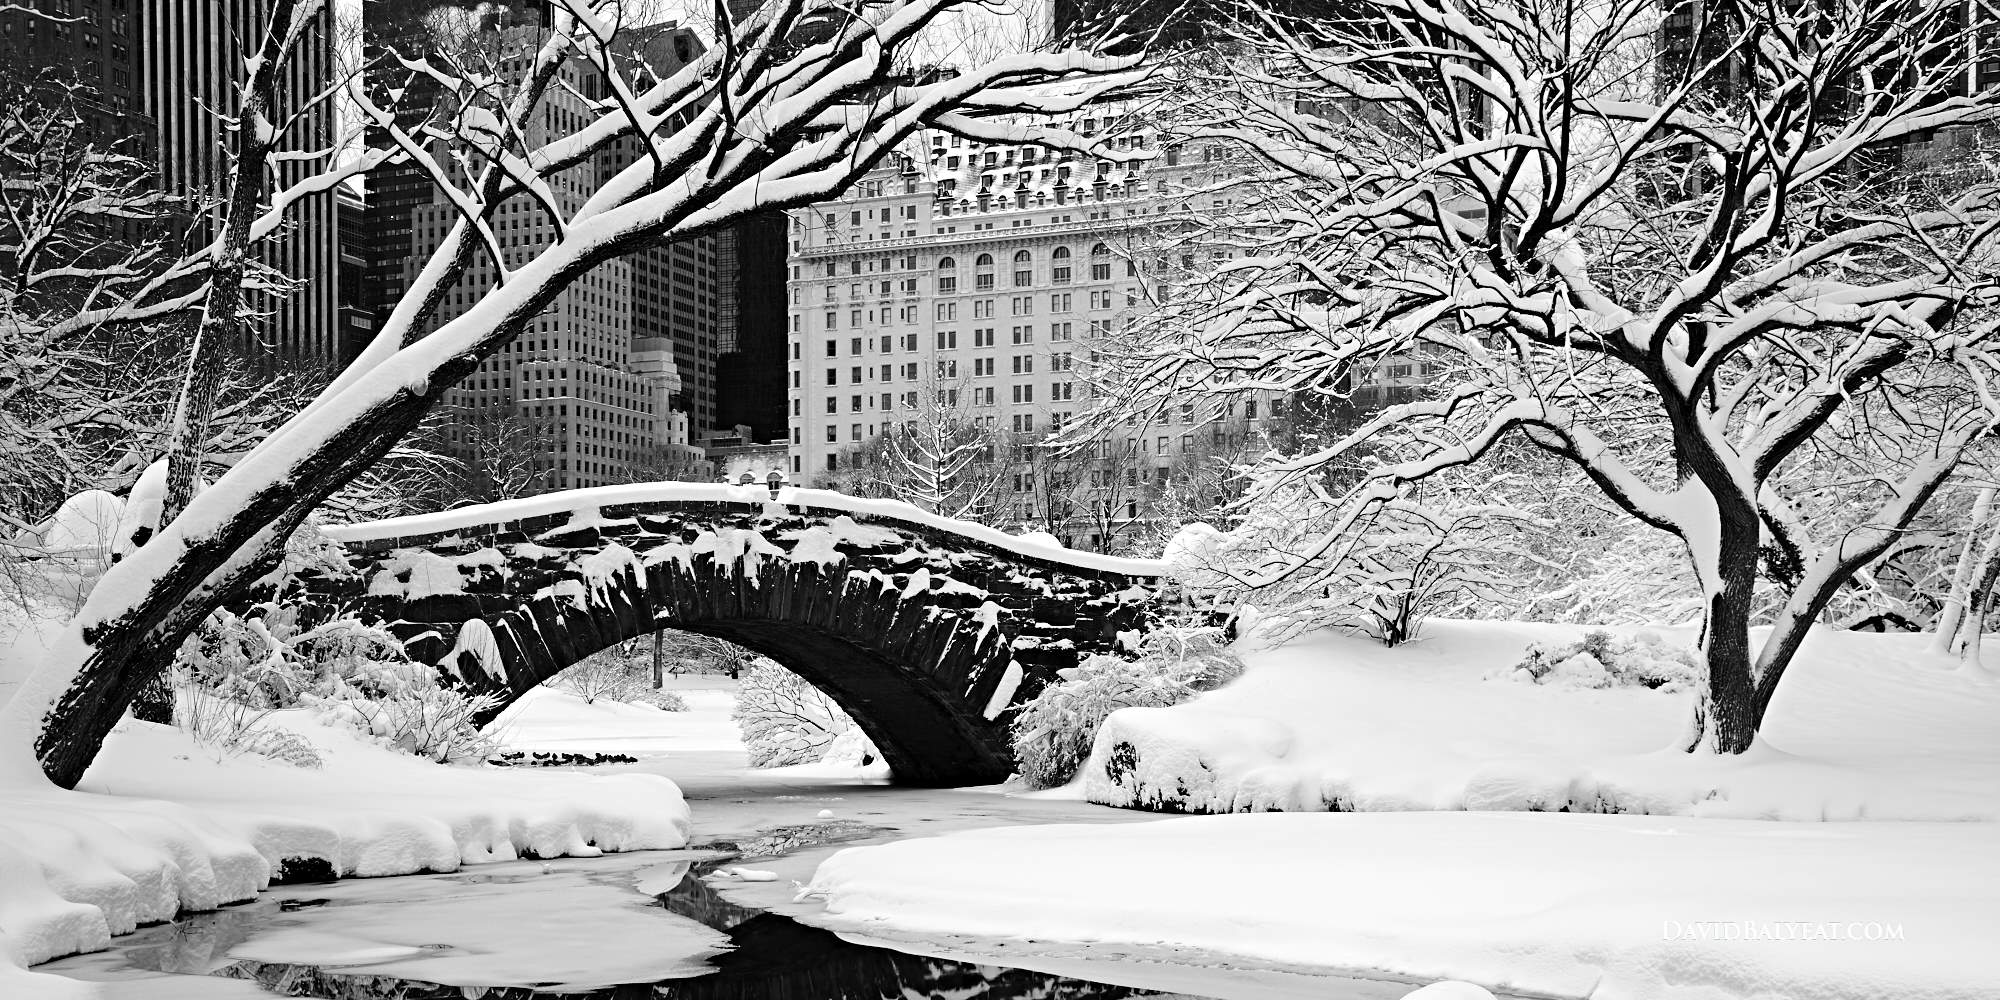 Central Park snow winter paradise New York City bridge high definition HD photography